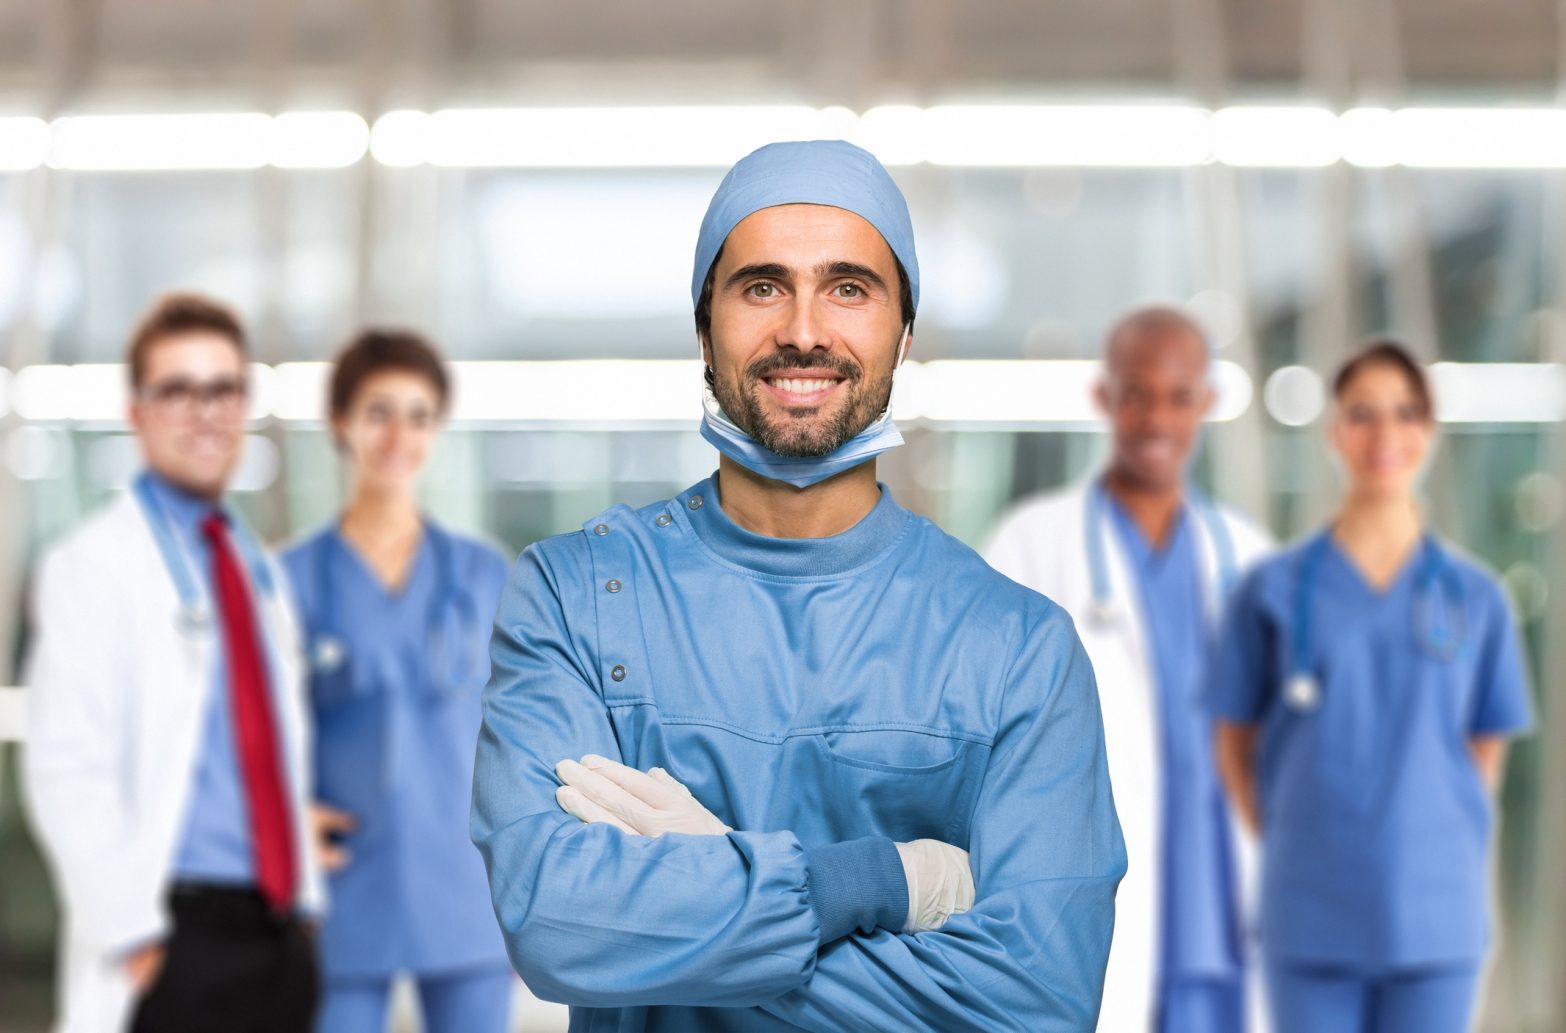 Smiling doctor in front of his team